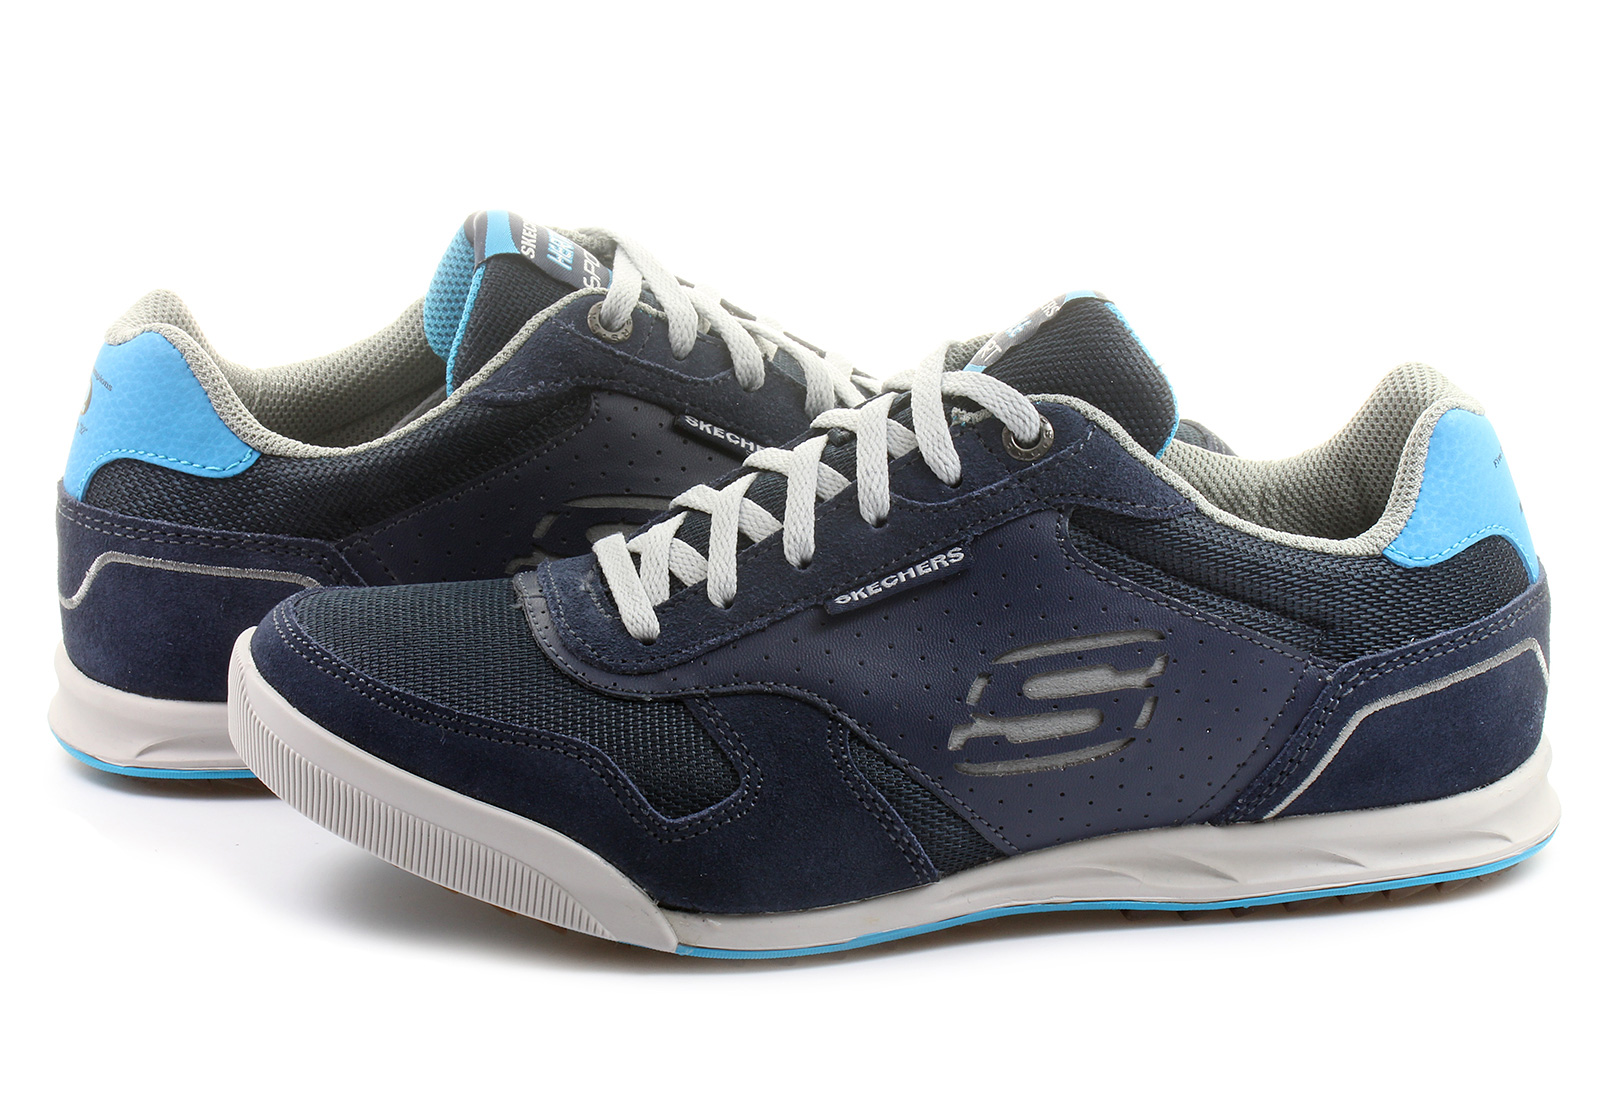 Skechers P Bbuty Exquisite Makes